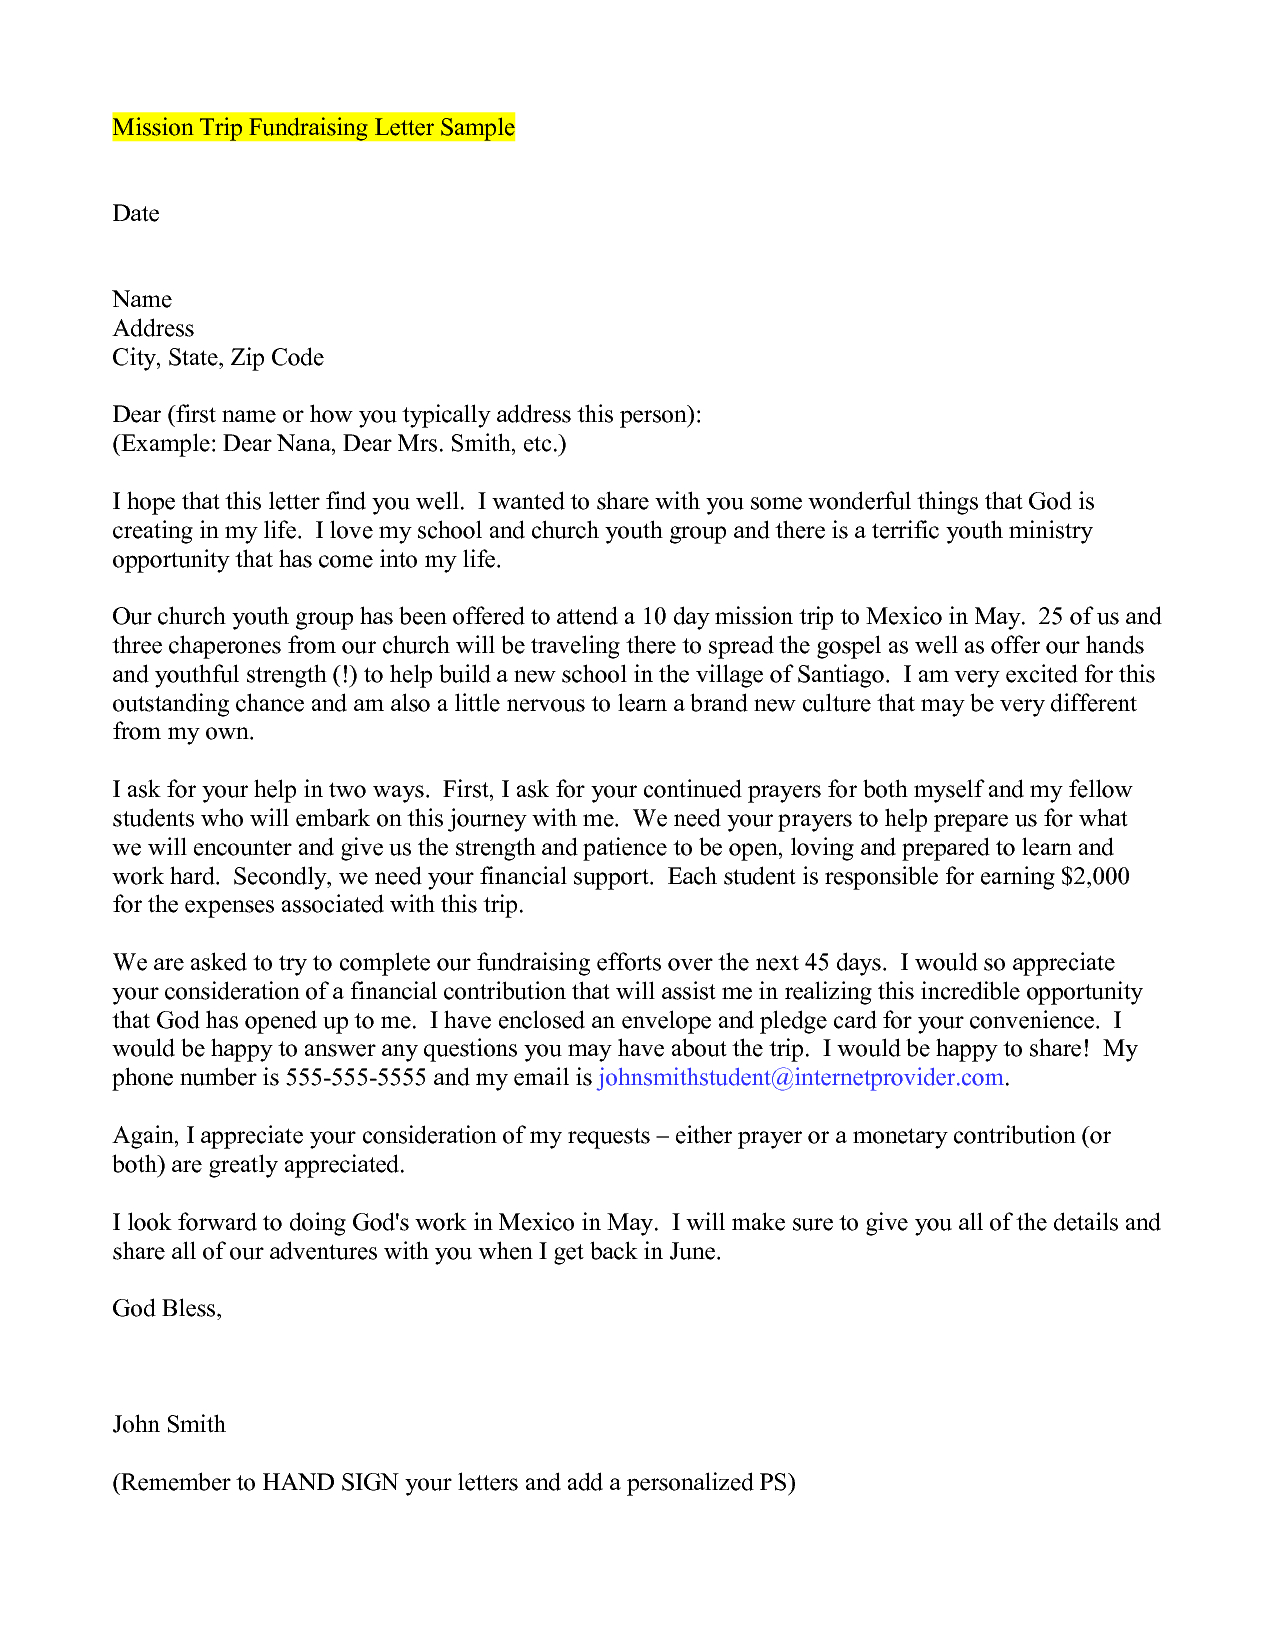 mission trip fundraising letter template how to write a mission trip support letter choice image